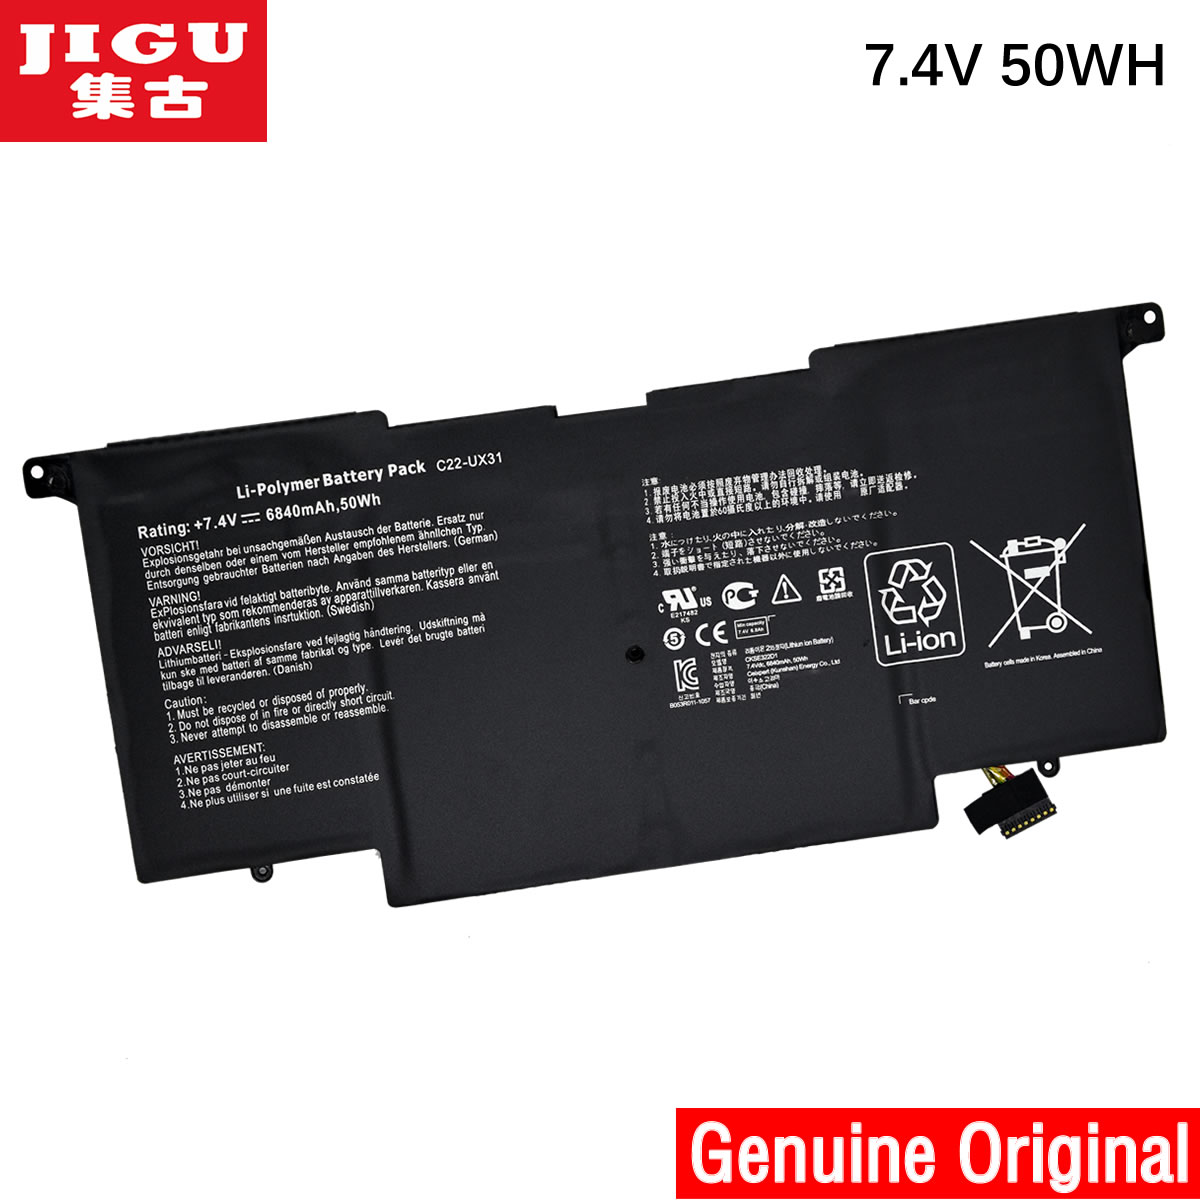 все цены на JIGU C22-UX31 C23-UX31 Original laptop Battery For Asus Ultrabook ZENBOOK UX31 UX31A UX31E 7.4V 6840MAH 50WH онлайн